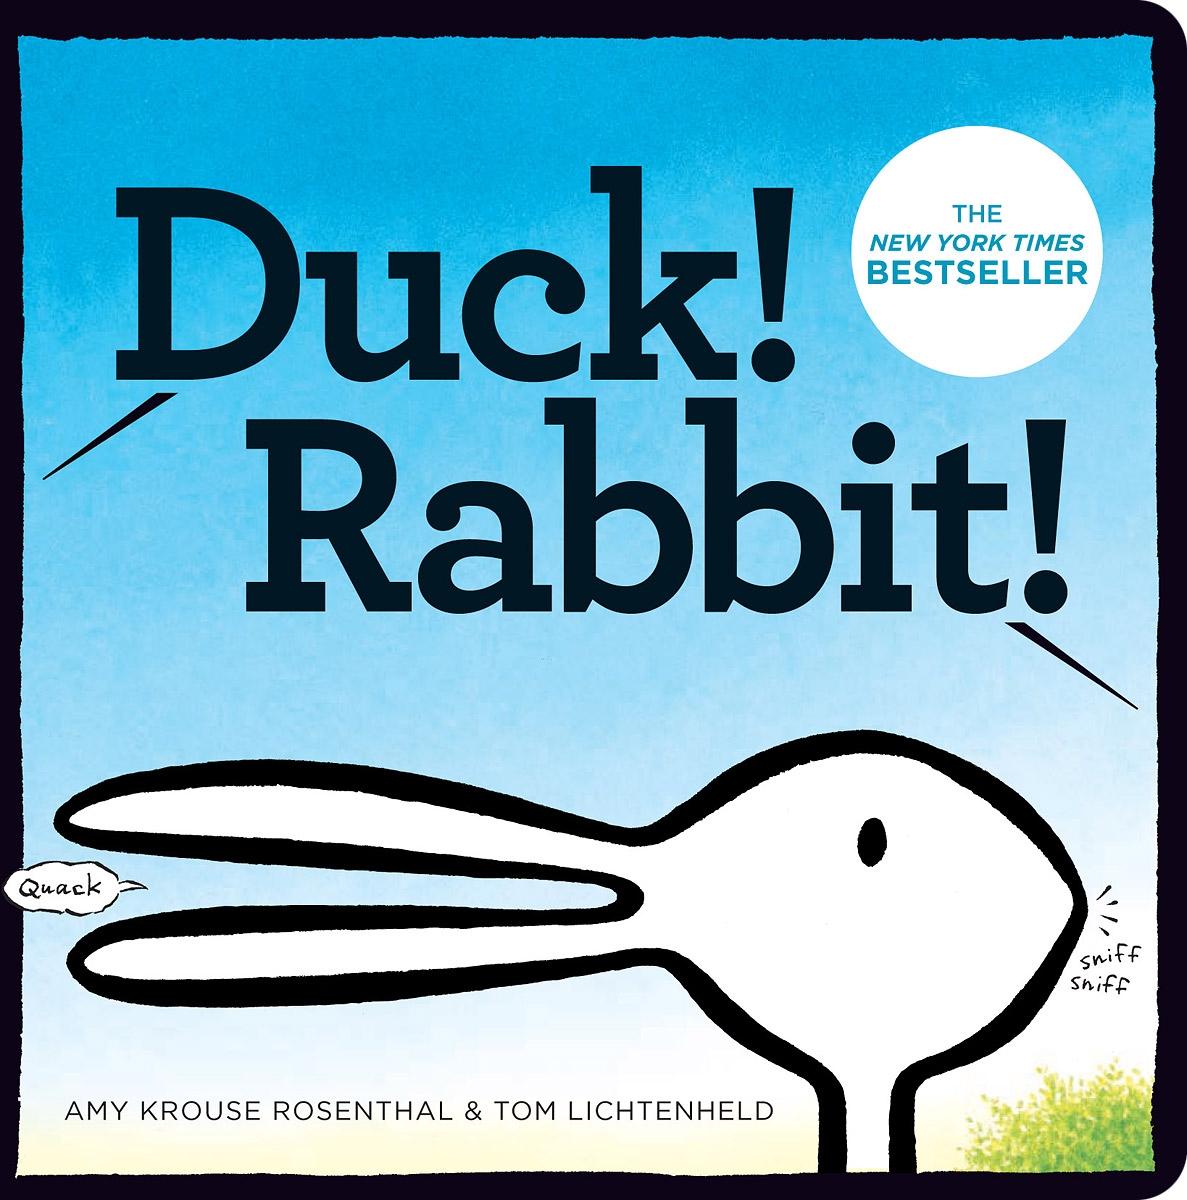 Duck! Rabbit! presidential nominee will address a gathering